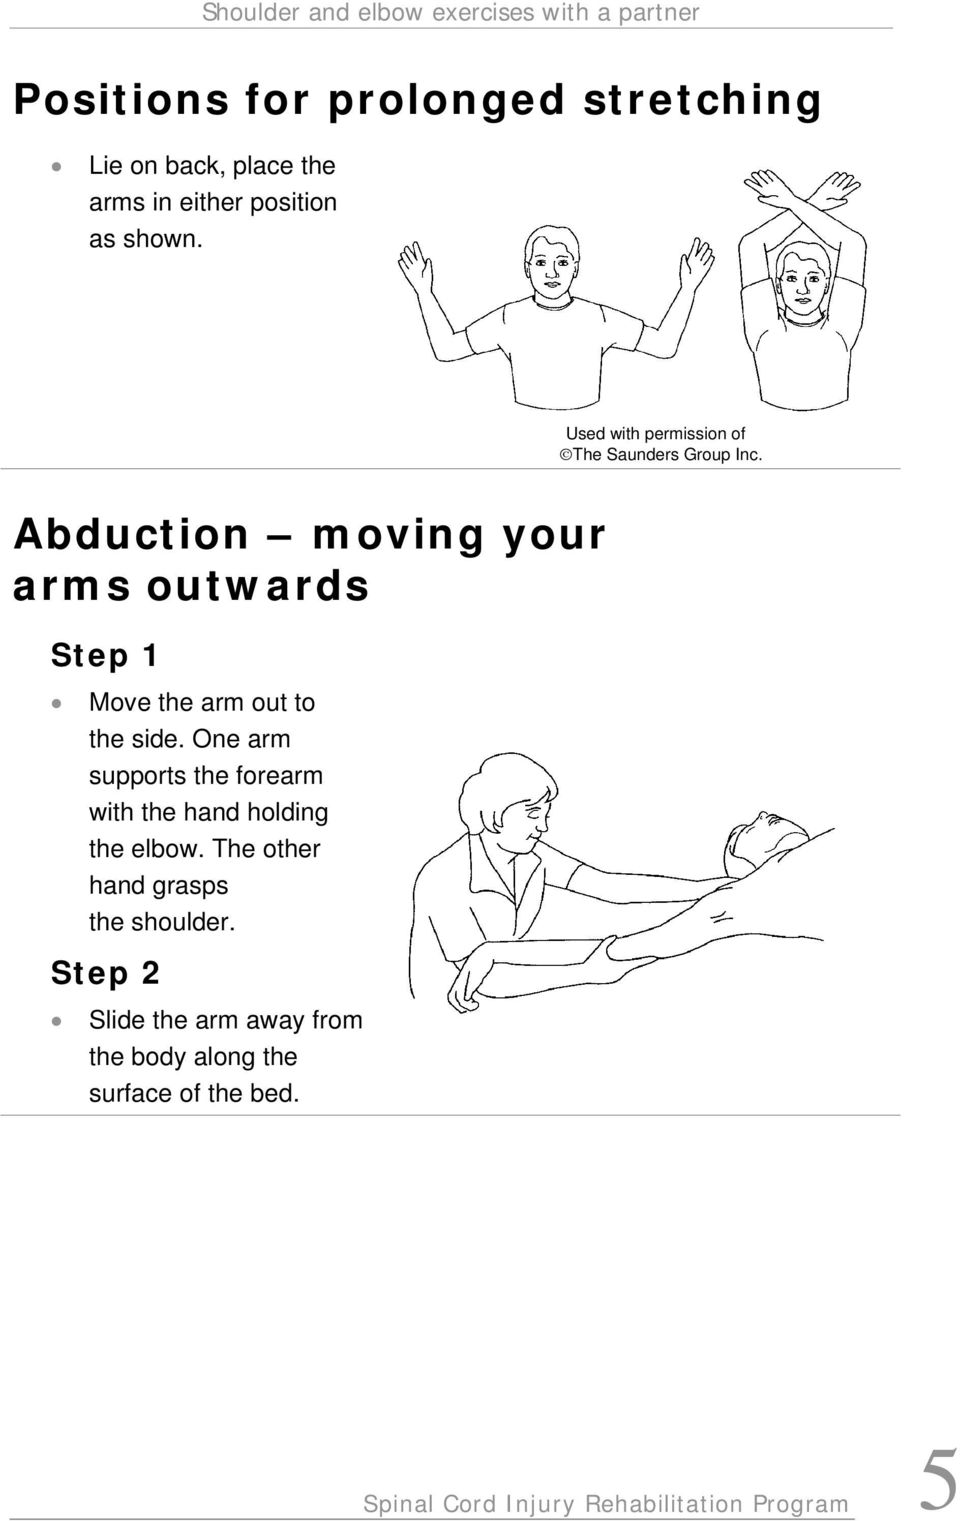 One arm supports the forearm with the hand holding the elbow. The other hand grasps the shoulder.